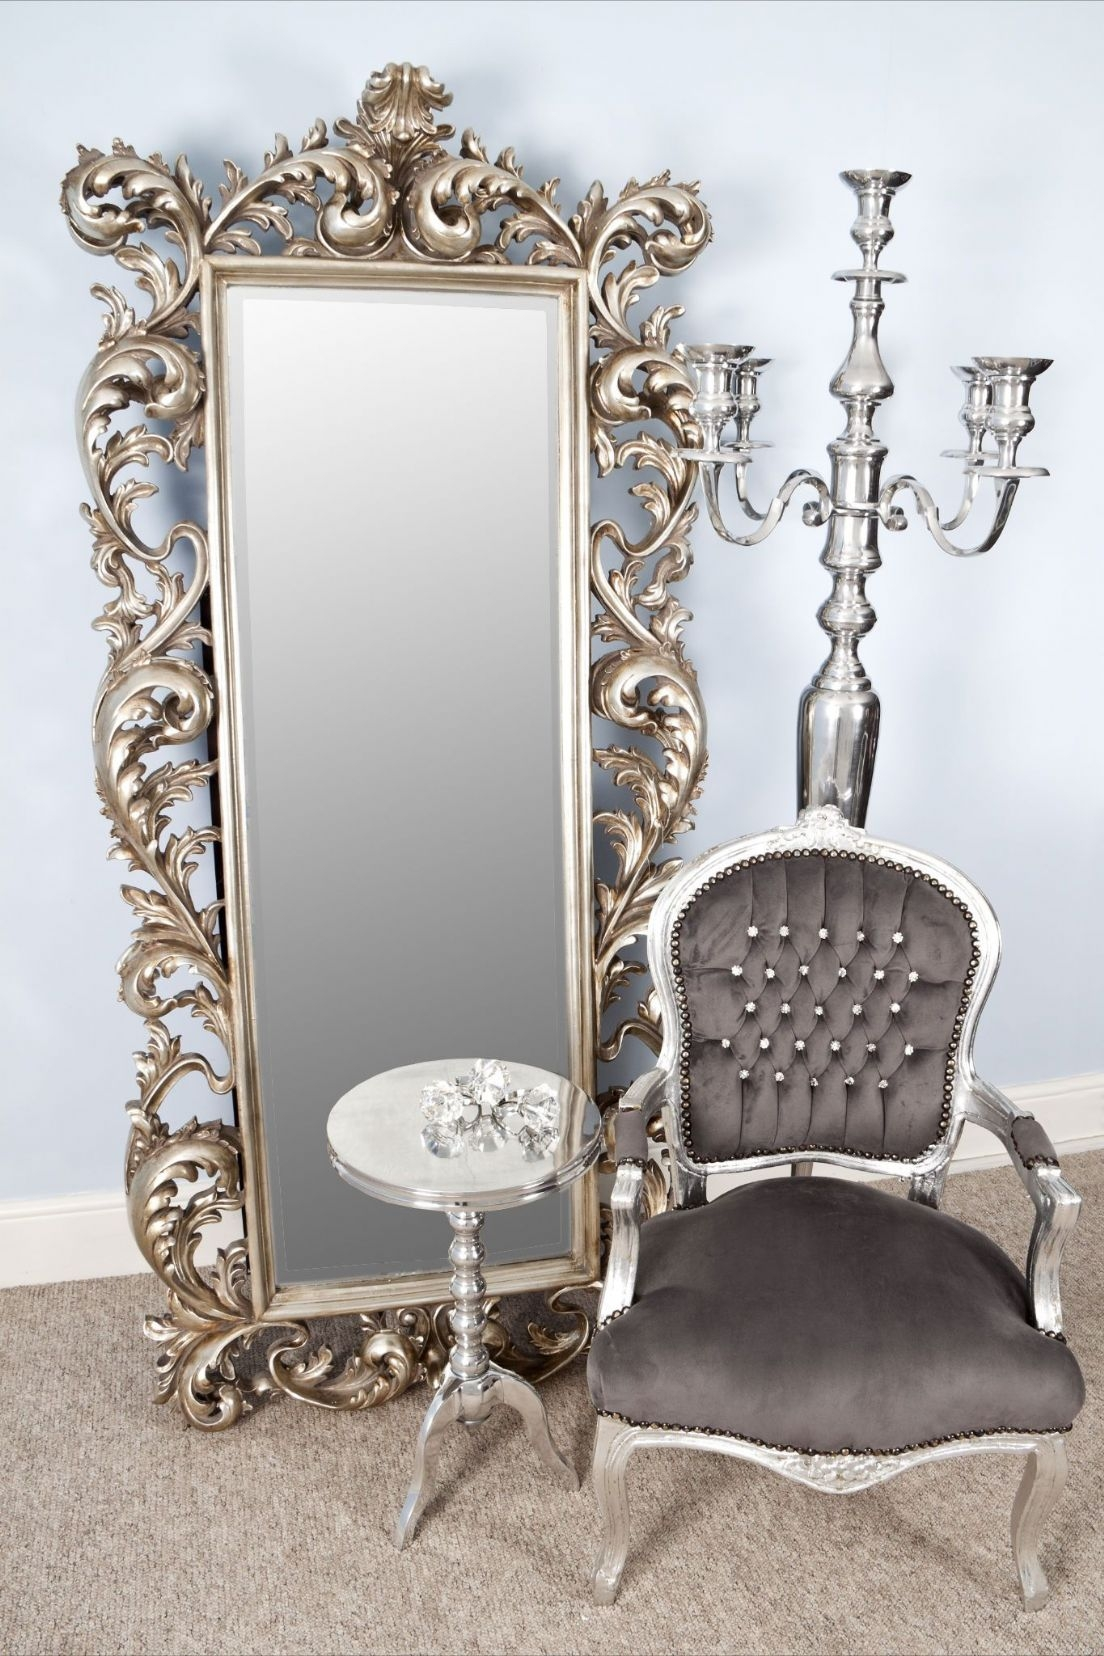 Nita Extra Large Silver Mirror 192 X 86 X 10 Cm Exclusive Mirrors Inside Rococo Mirrors Cheap (View 2 of 15)